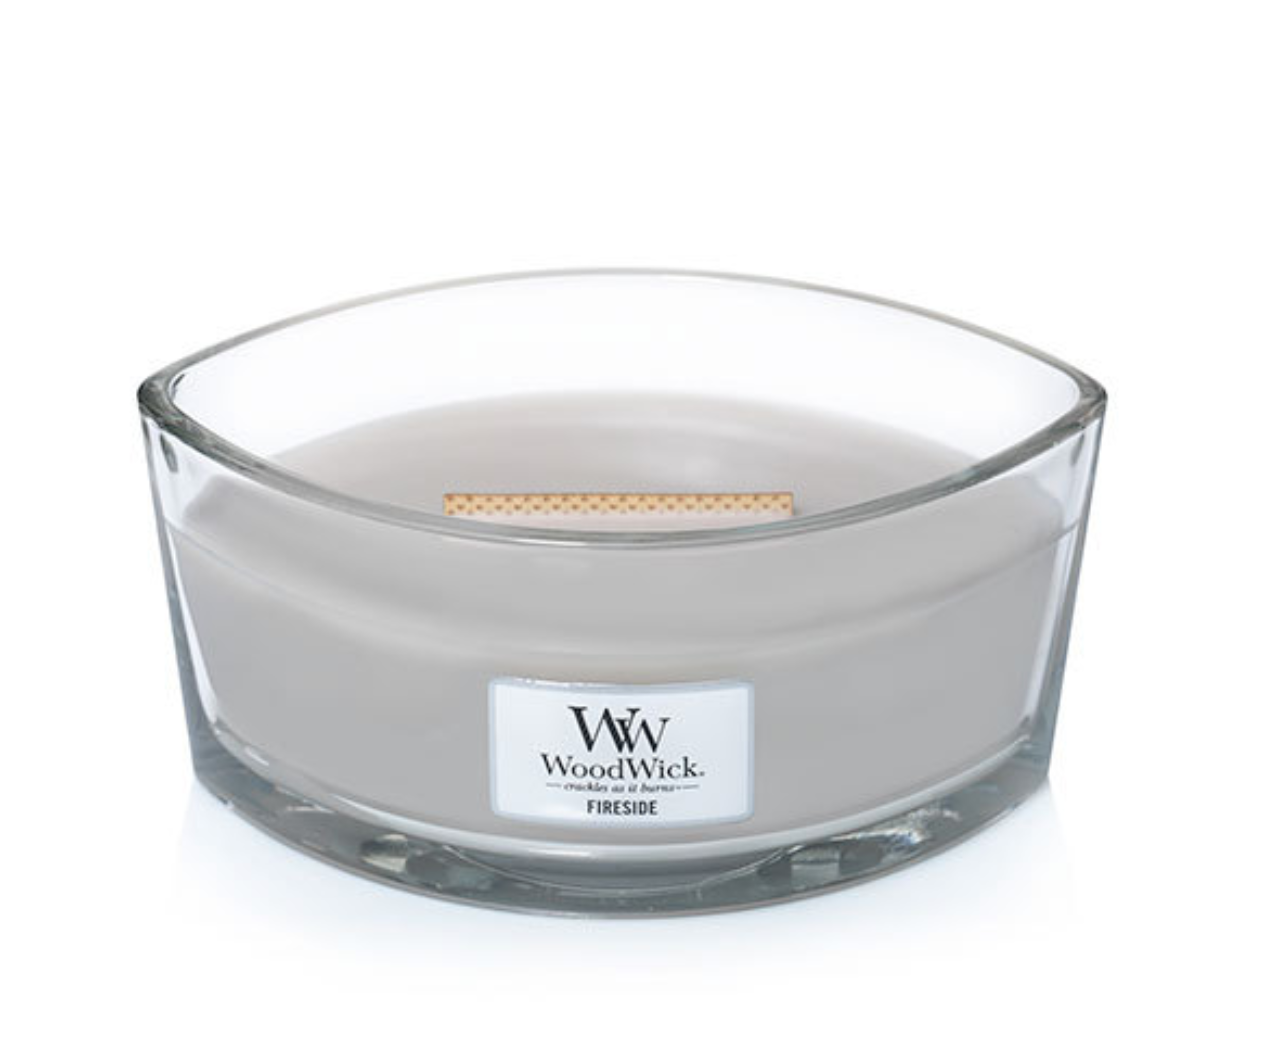 https://woodwick.yankeecandle.com/product/fireside/_/R-76106